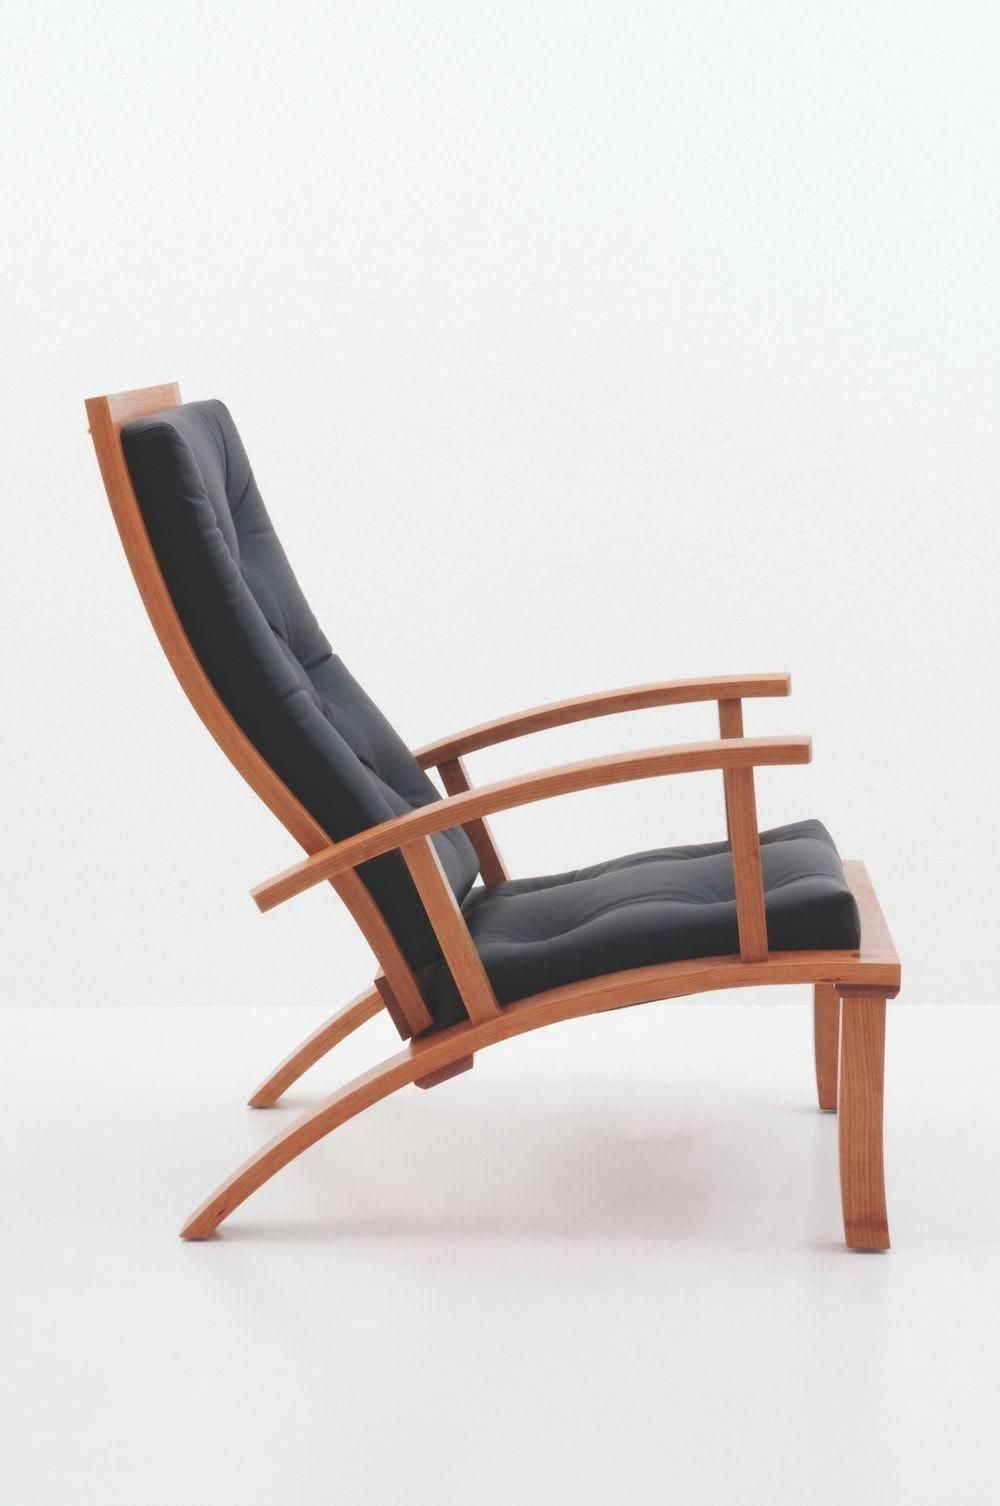 Lolling Chair Lounge Chair Design Chair Scandinavian Dining Chairs